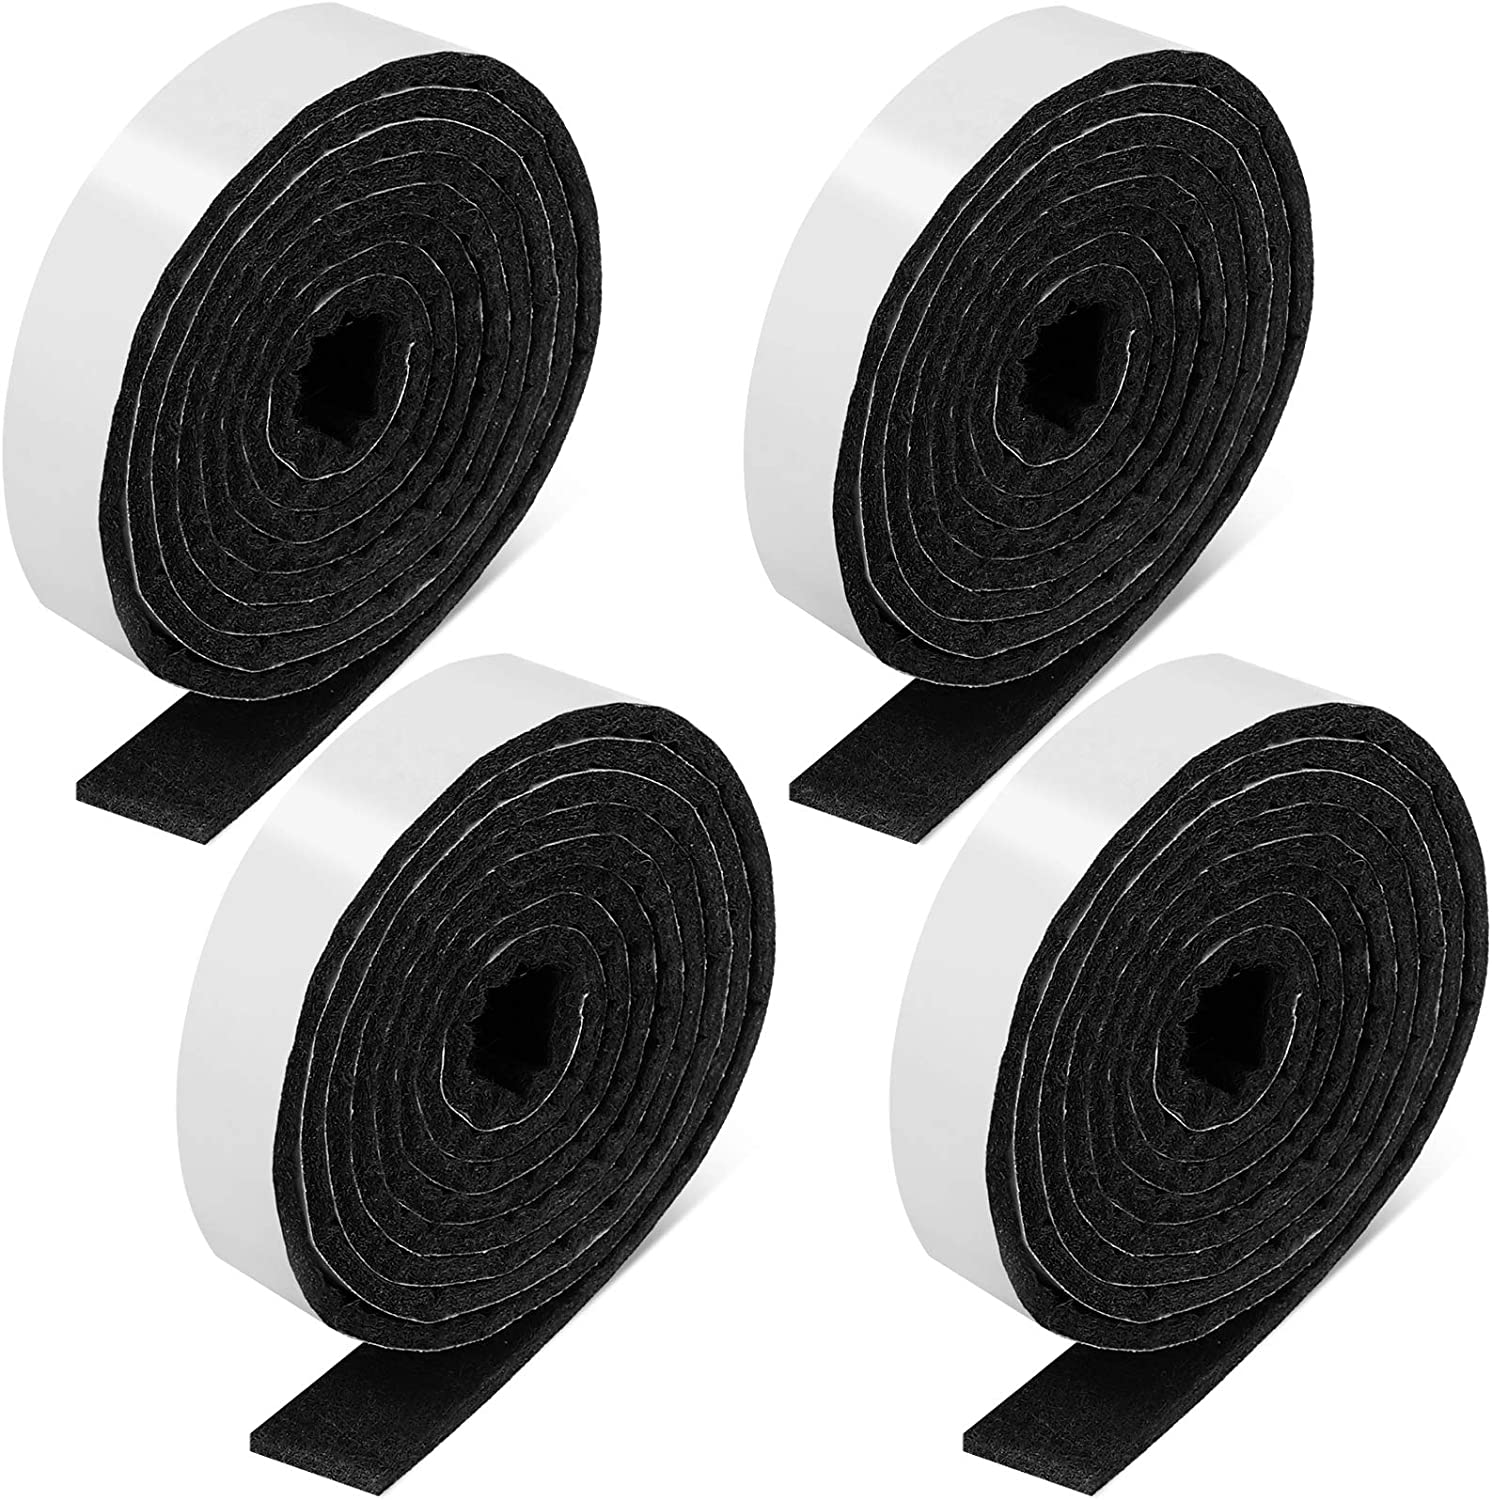 4 Rolls 1/2 x 60 Inch Self-Stick Heavy Duty Felt Strips Self Adhesive Felt Tapes Polyester Felt Strip Rolls for Protecting Furniture and Freedom DIY Adhesive, 240 x 0.5 x 0.12 Inches (Black)